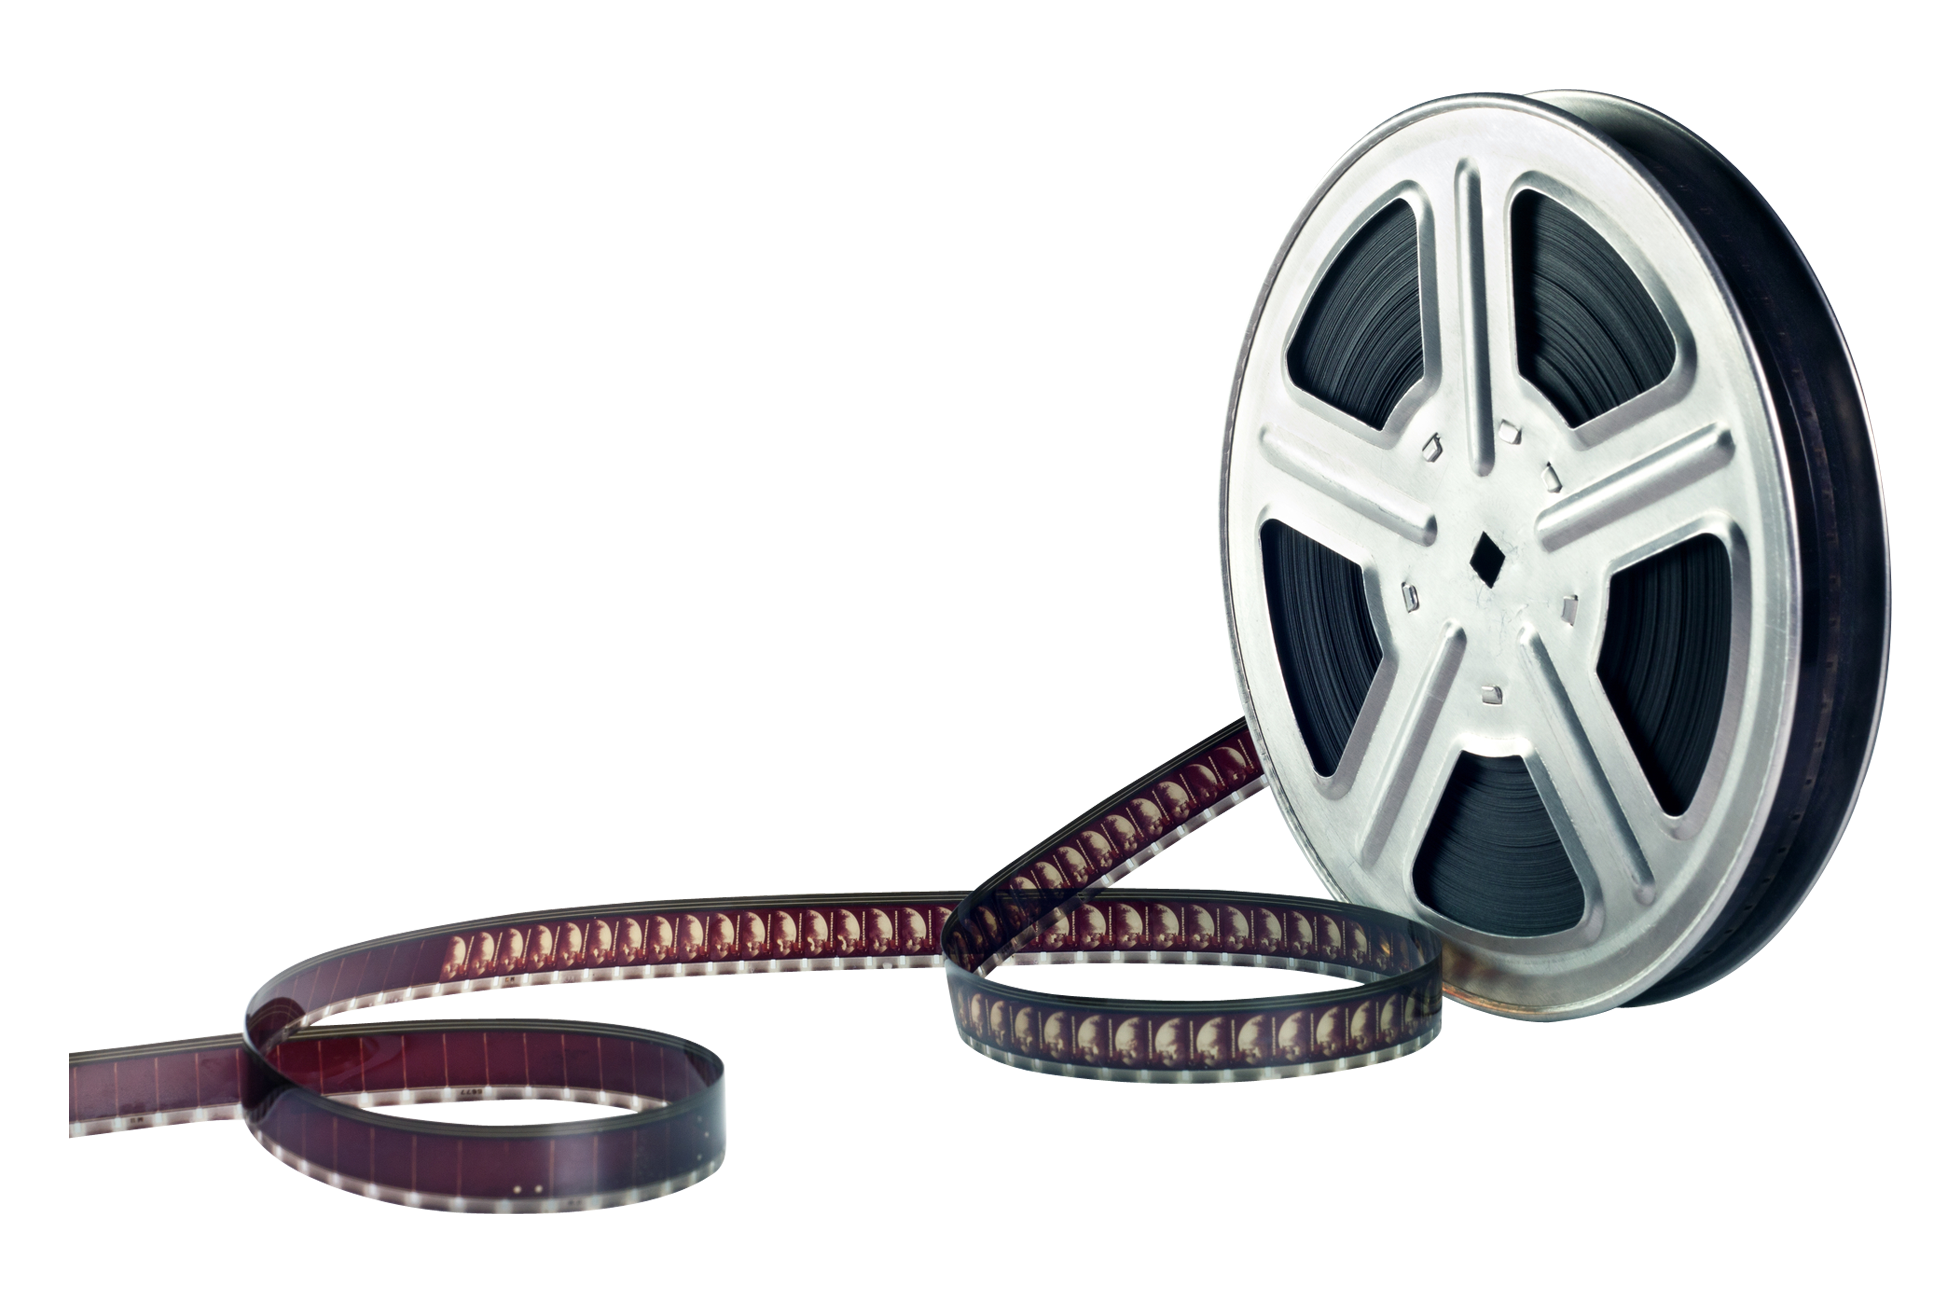 Reel Film Free Transparent Image HD PNG Image